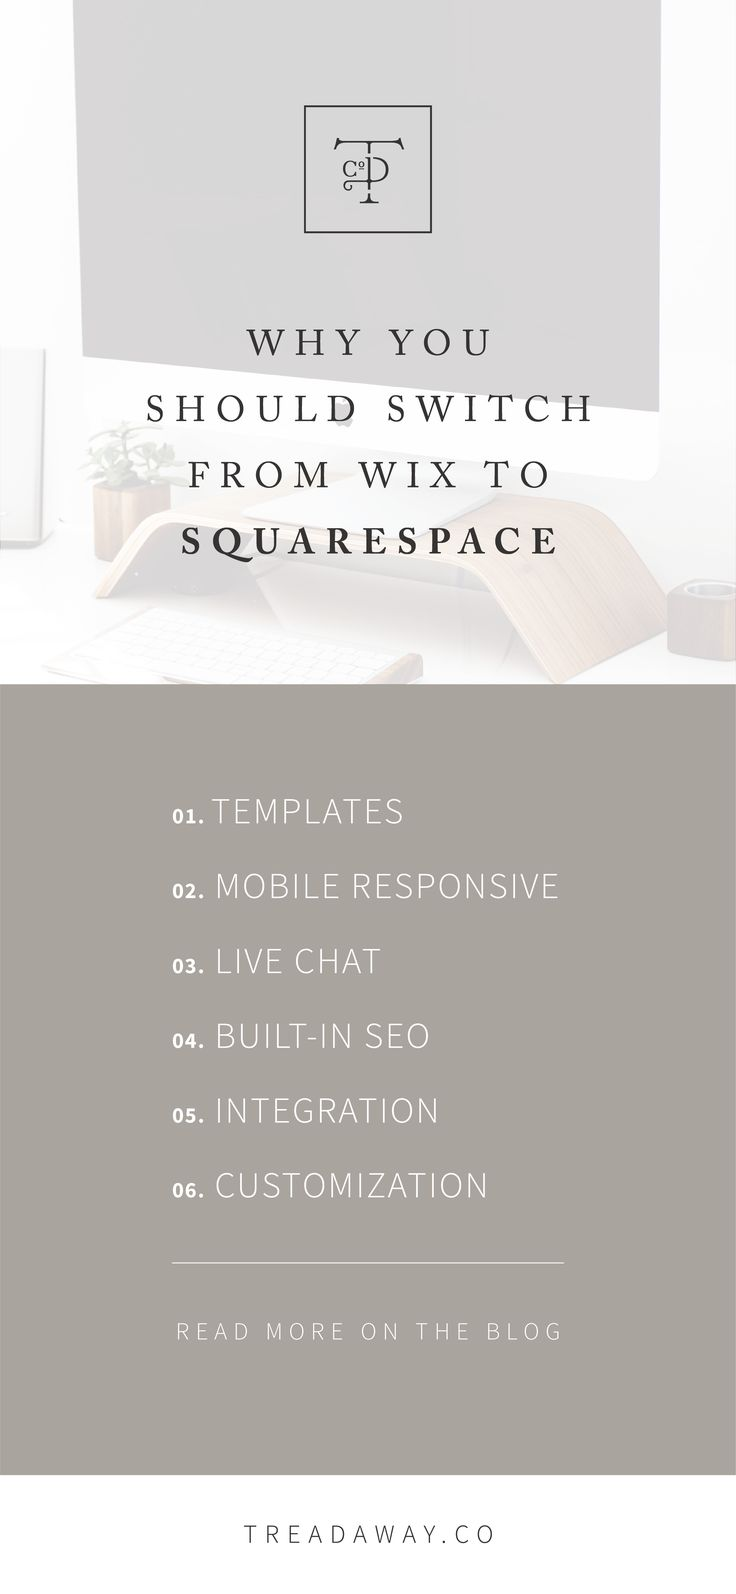 Why You Should Switch From Wix To Squarespace   Treadaway Co. Design   Thank goodness website builders have come so far. What used to require HTML or CSS knowledge can now be done with a few clicks and drag-and-drops. However, because this method of website building has become so popular, the number of host websites to choose from has increased ten-fold.